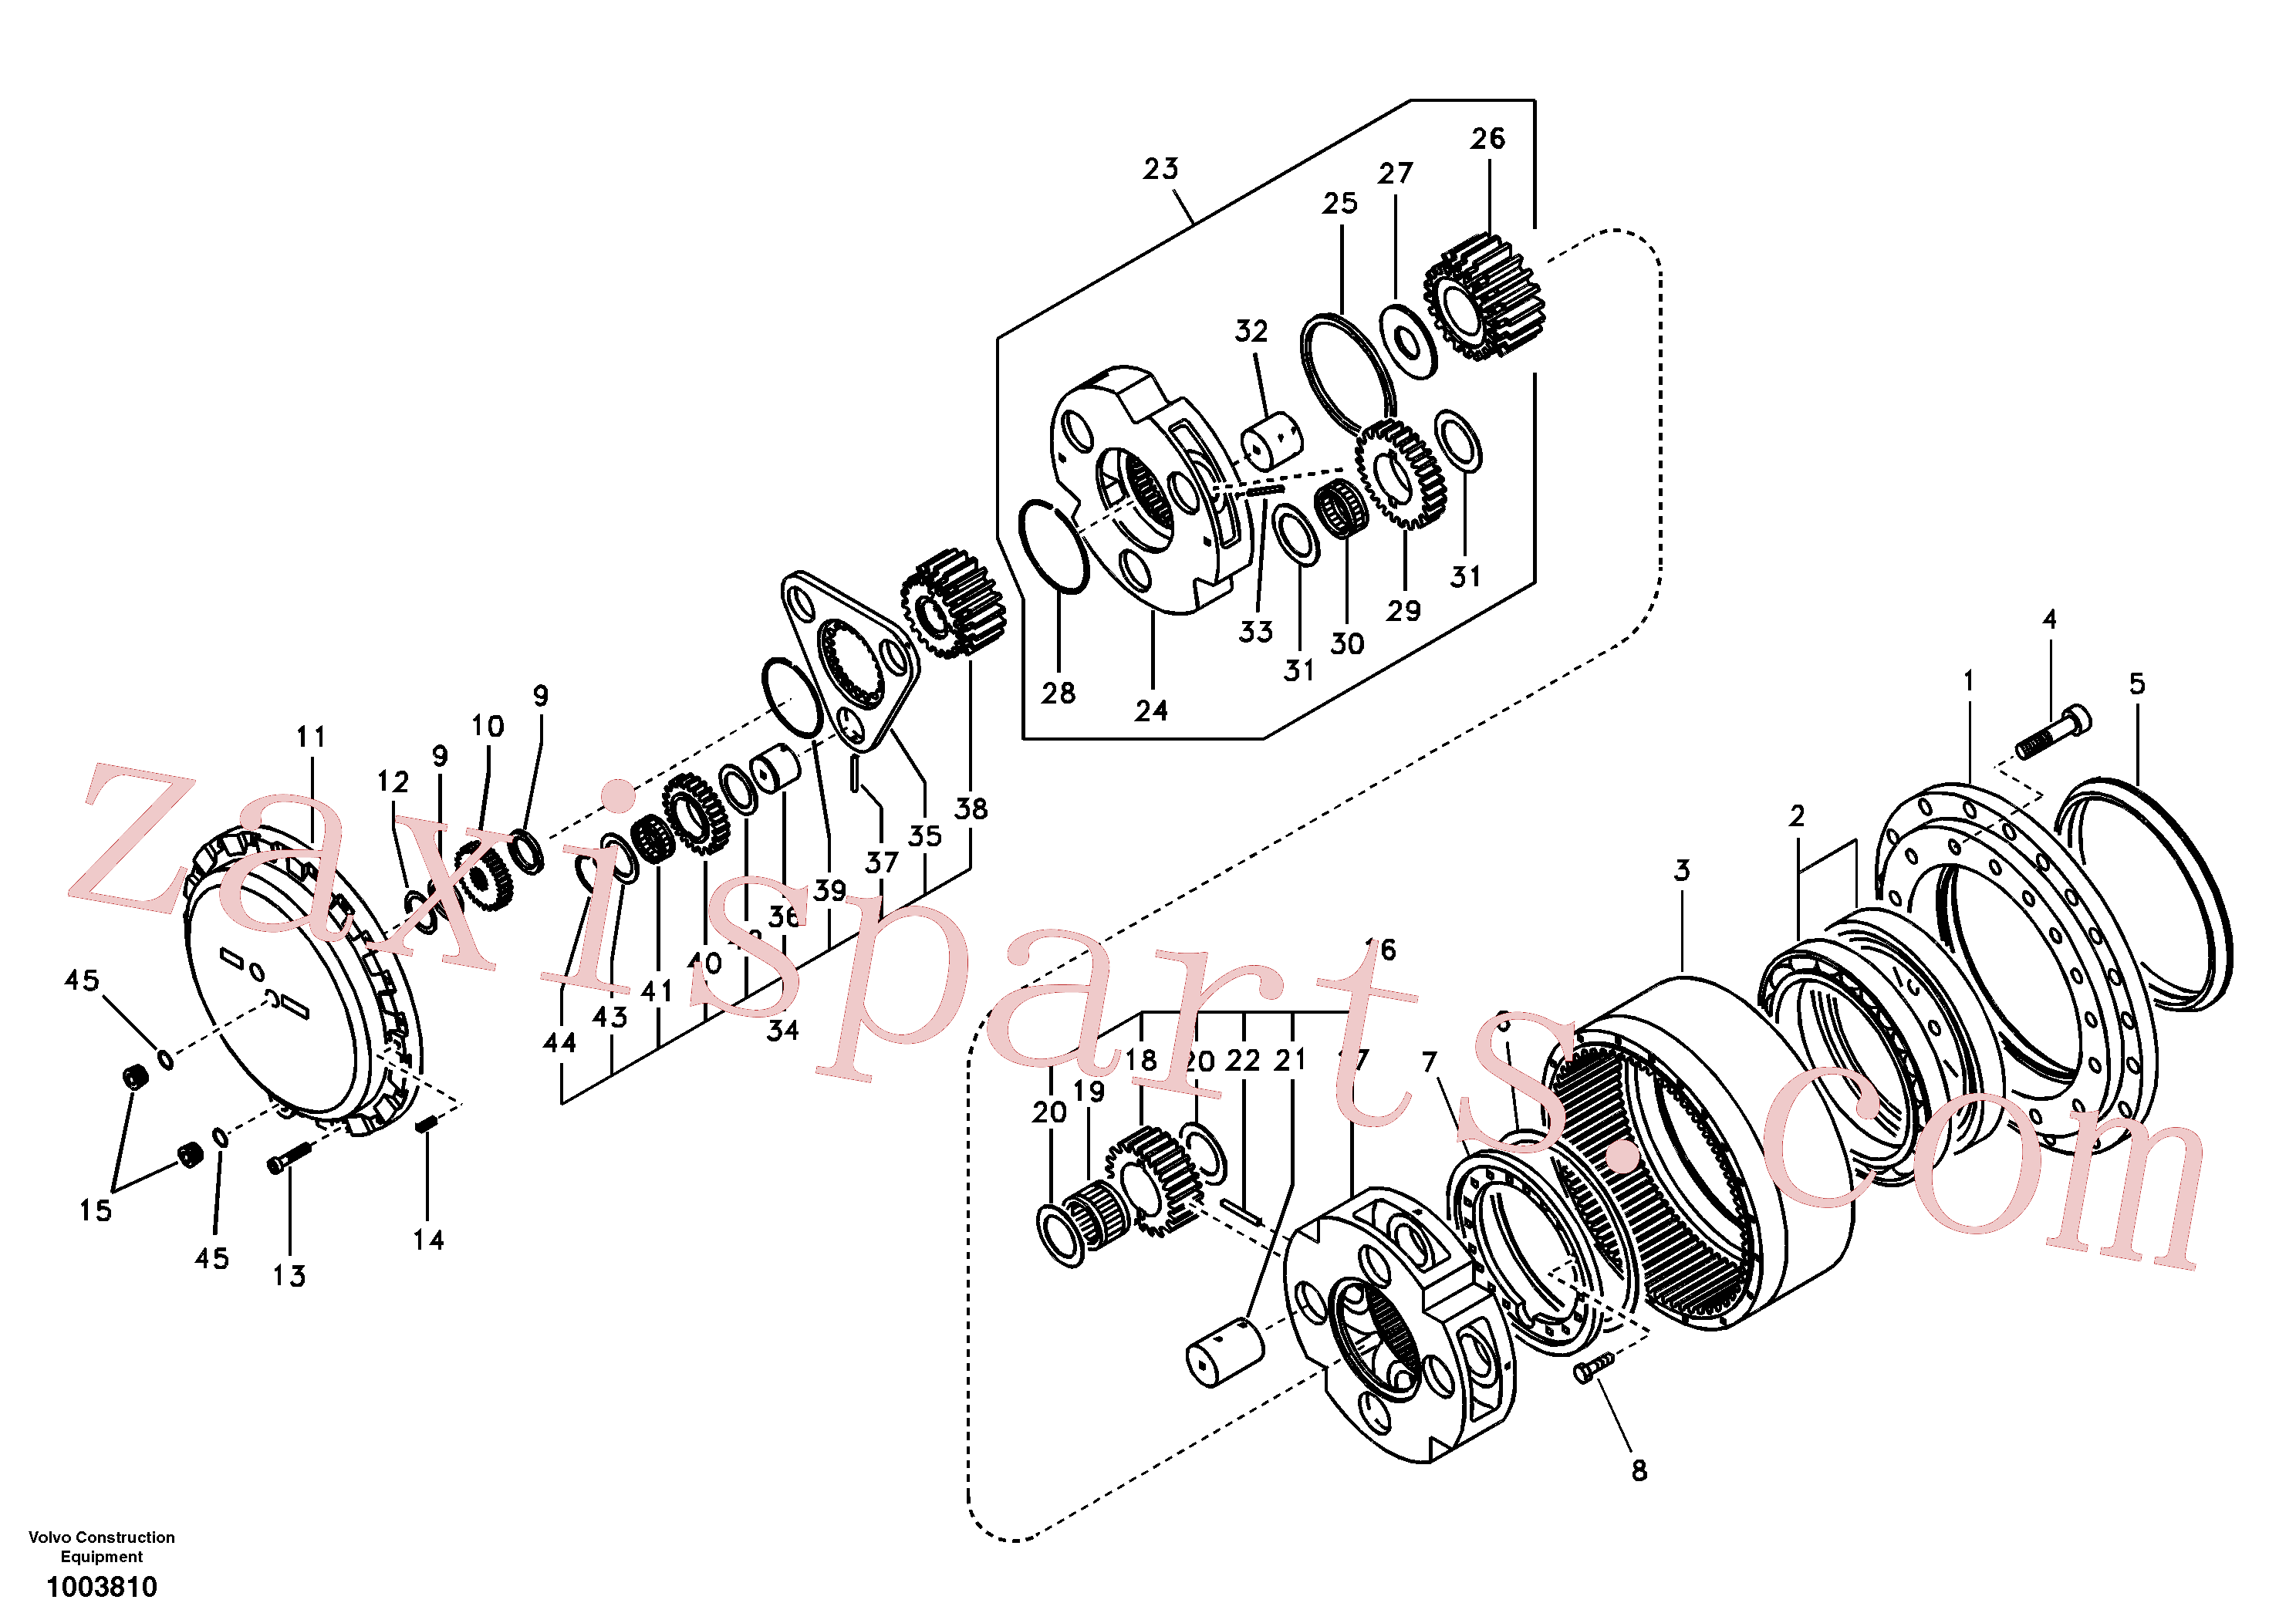 SA1036-00080 for Volvo Travel gearbox(1003810 assembly)